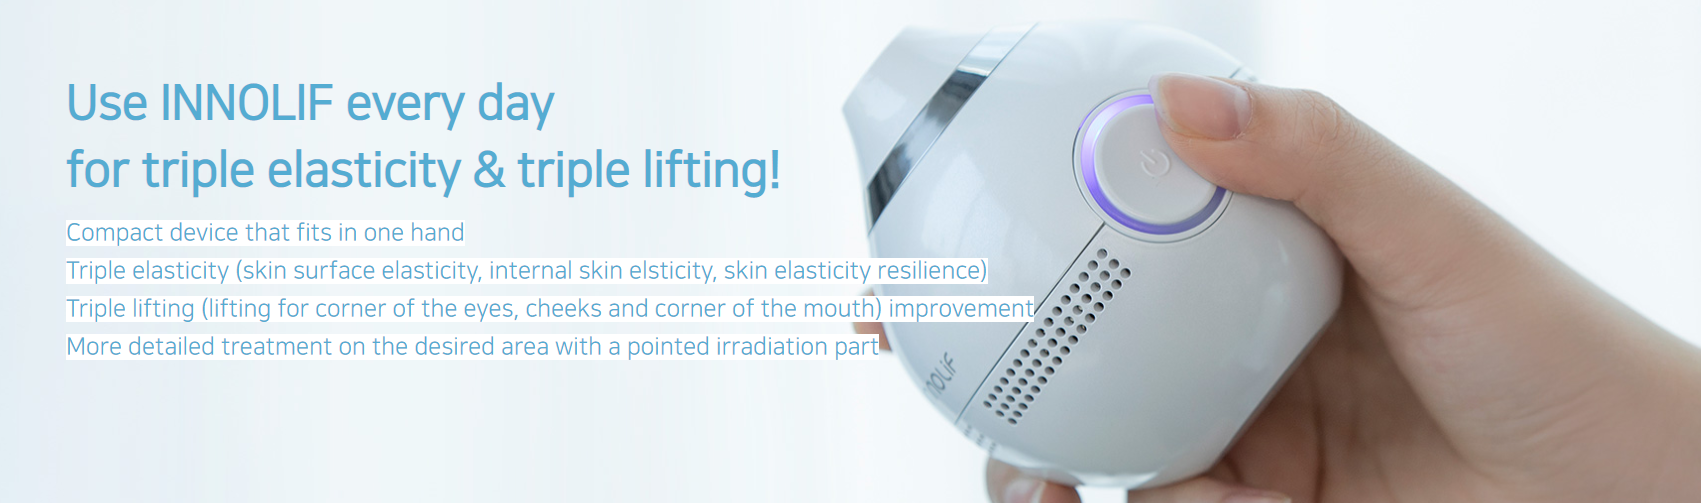 Use INNOLIF every day for triple elasticity & lifting!